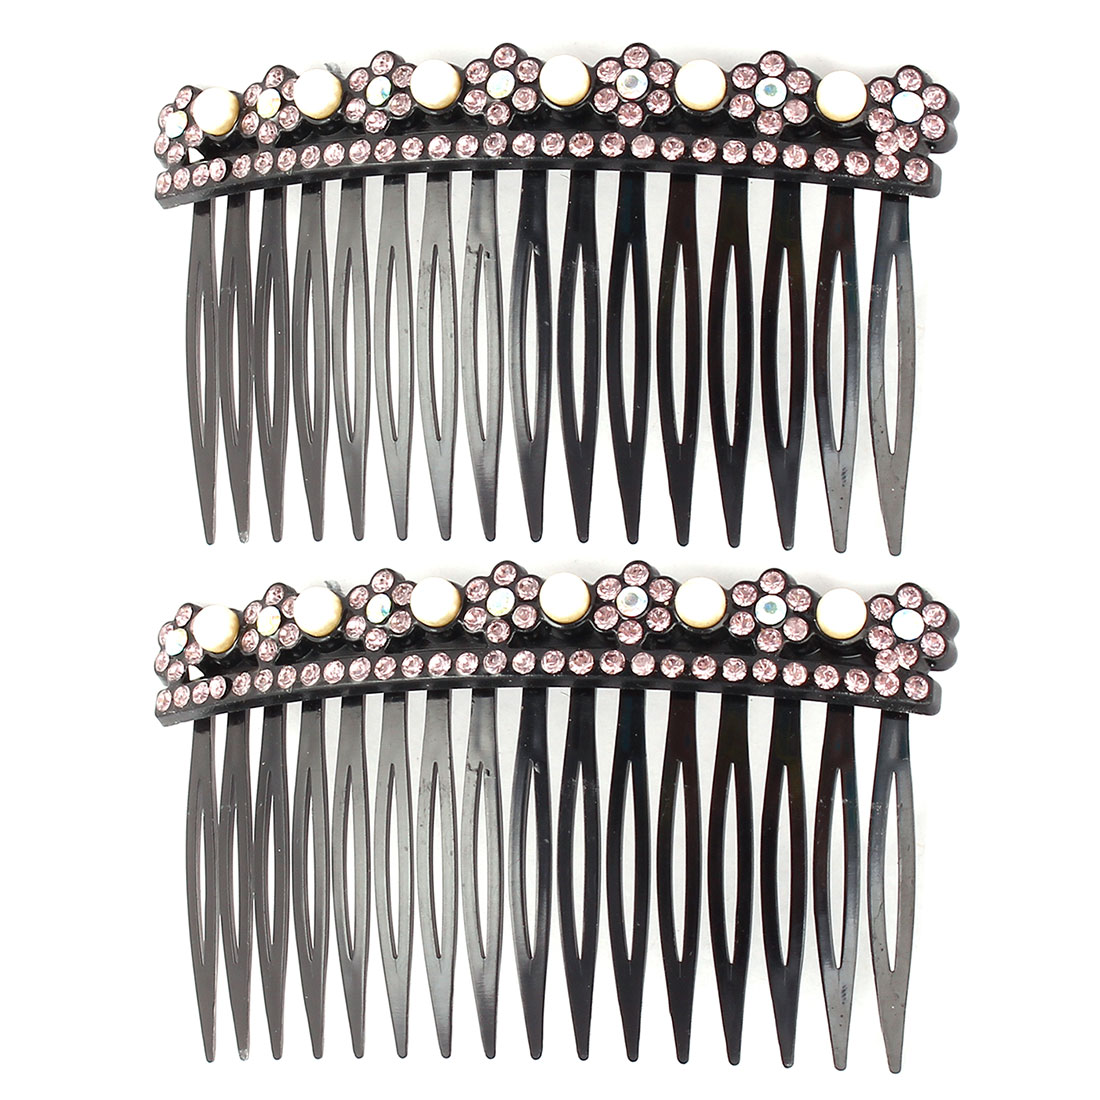 Lady Plastic Flower Design Decor Inlaid 16 Teeth Comb Hair Clips Pale Pink 2pcs